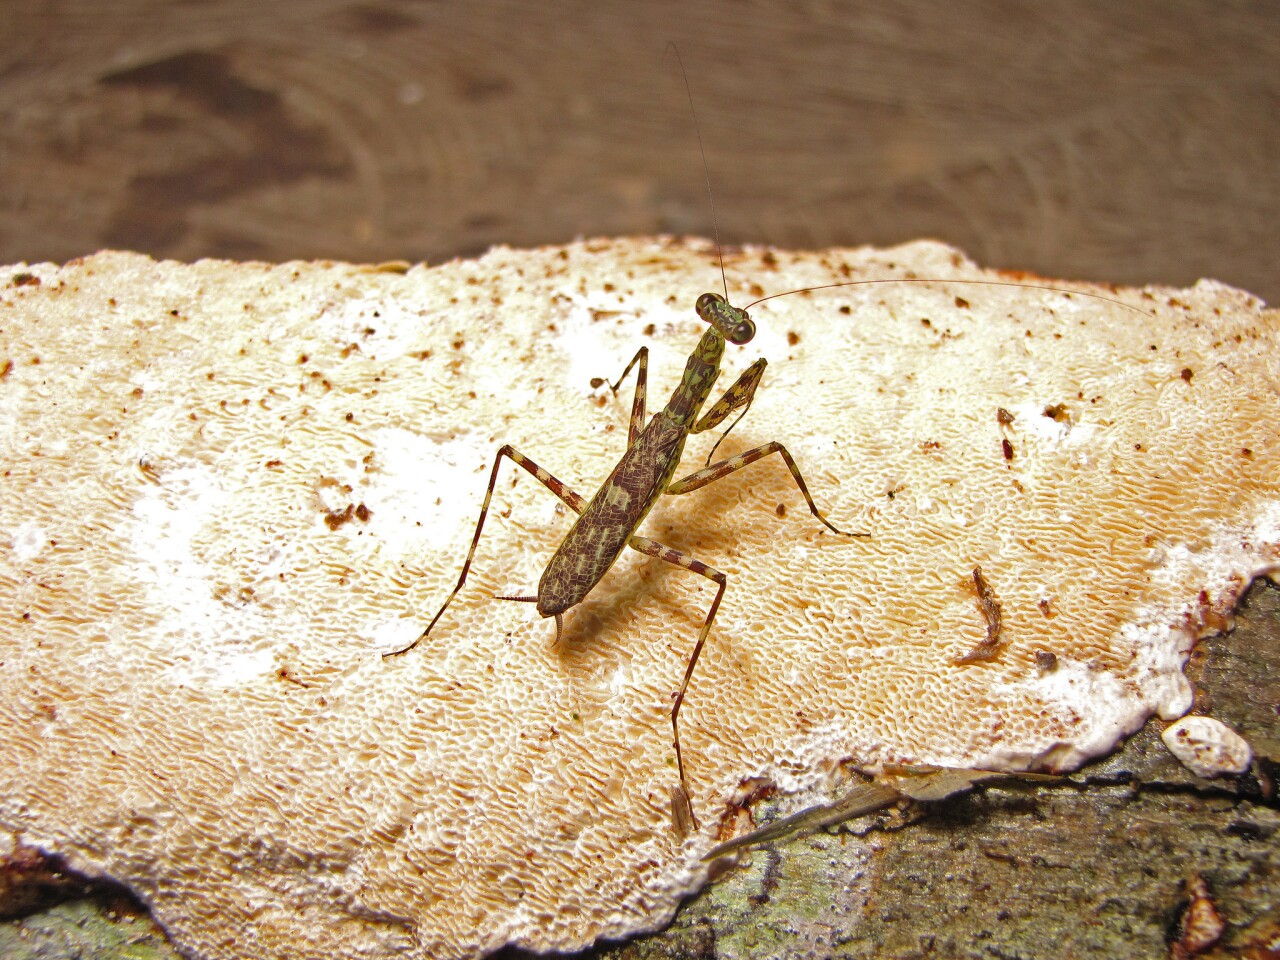 Liturgusa algorei, a newly discovered species of praying mantis, is named for former United States Vice President Al Gore in honor of his environmental advocacy. This male was caught in northern Peru in a rain forest by the Amazon River.